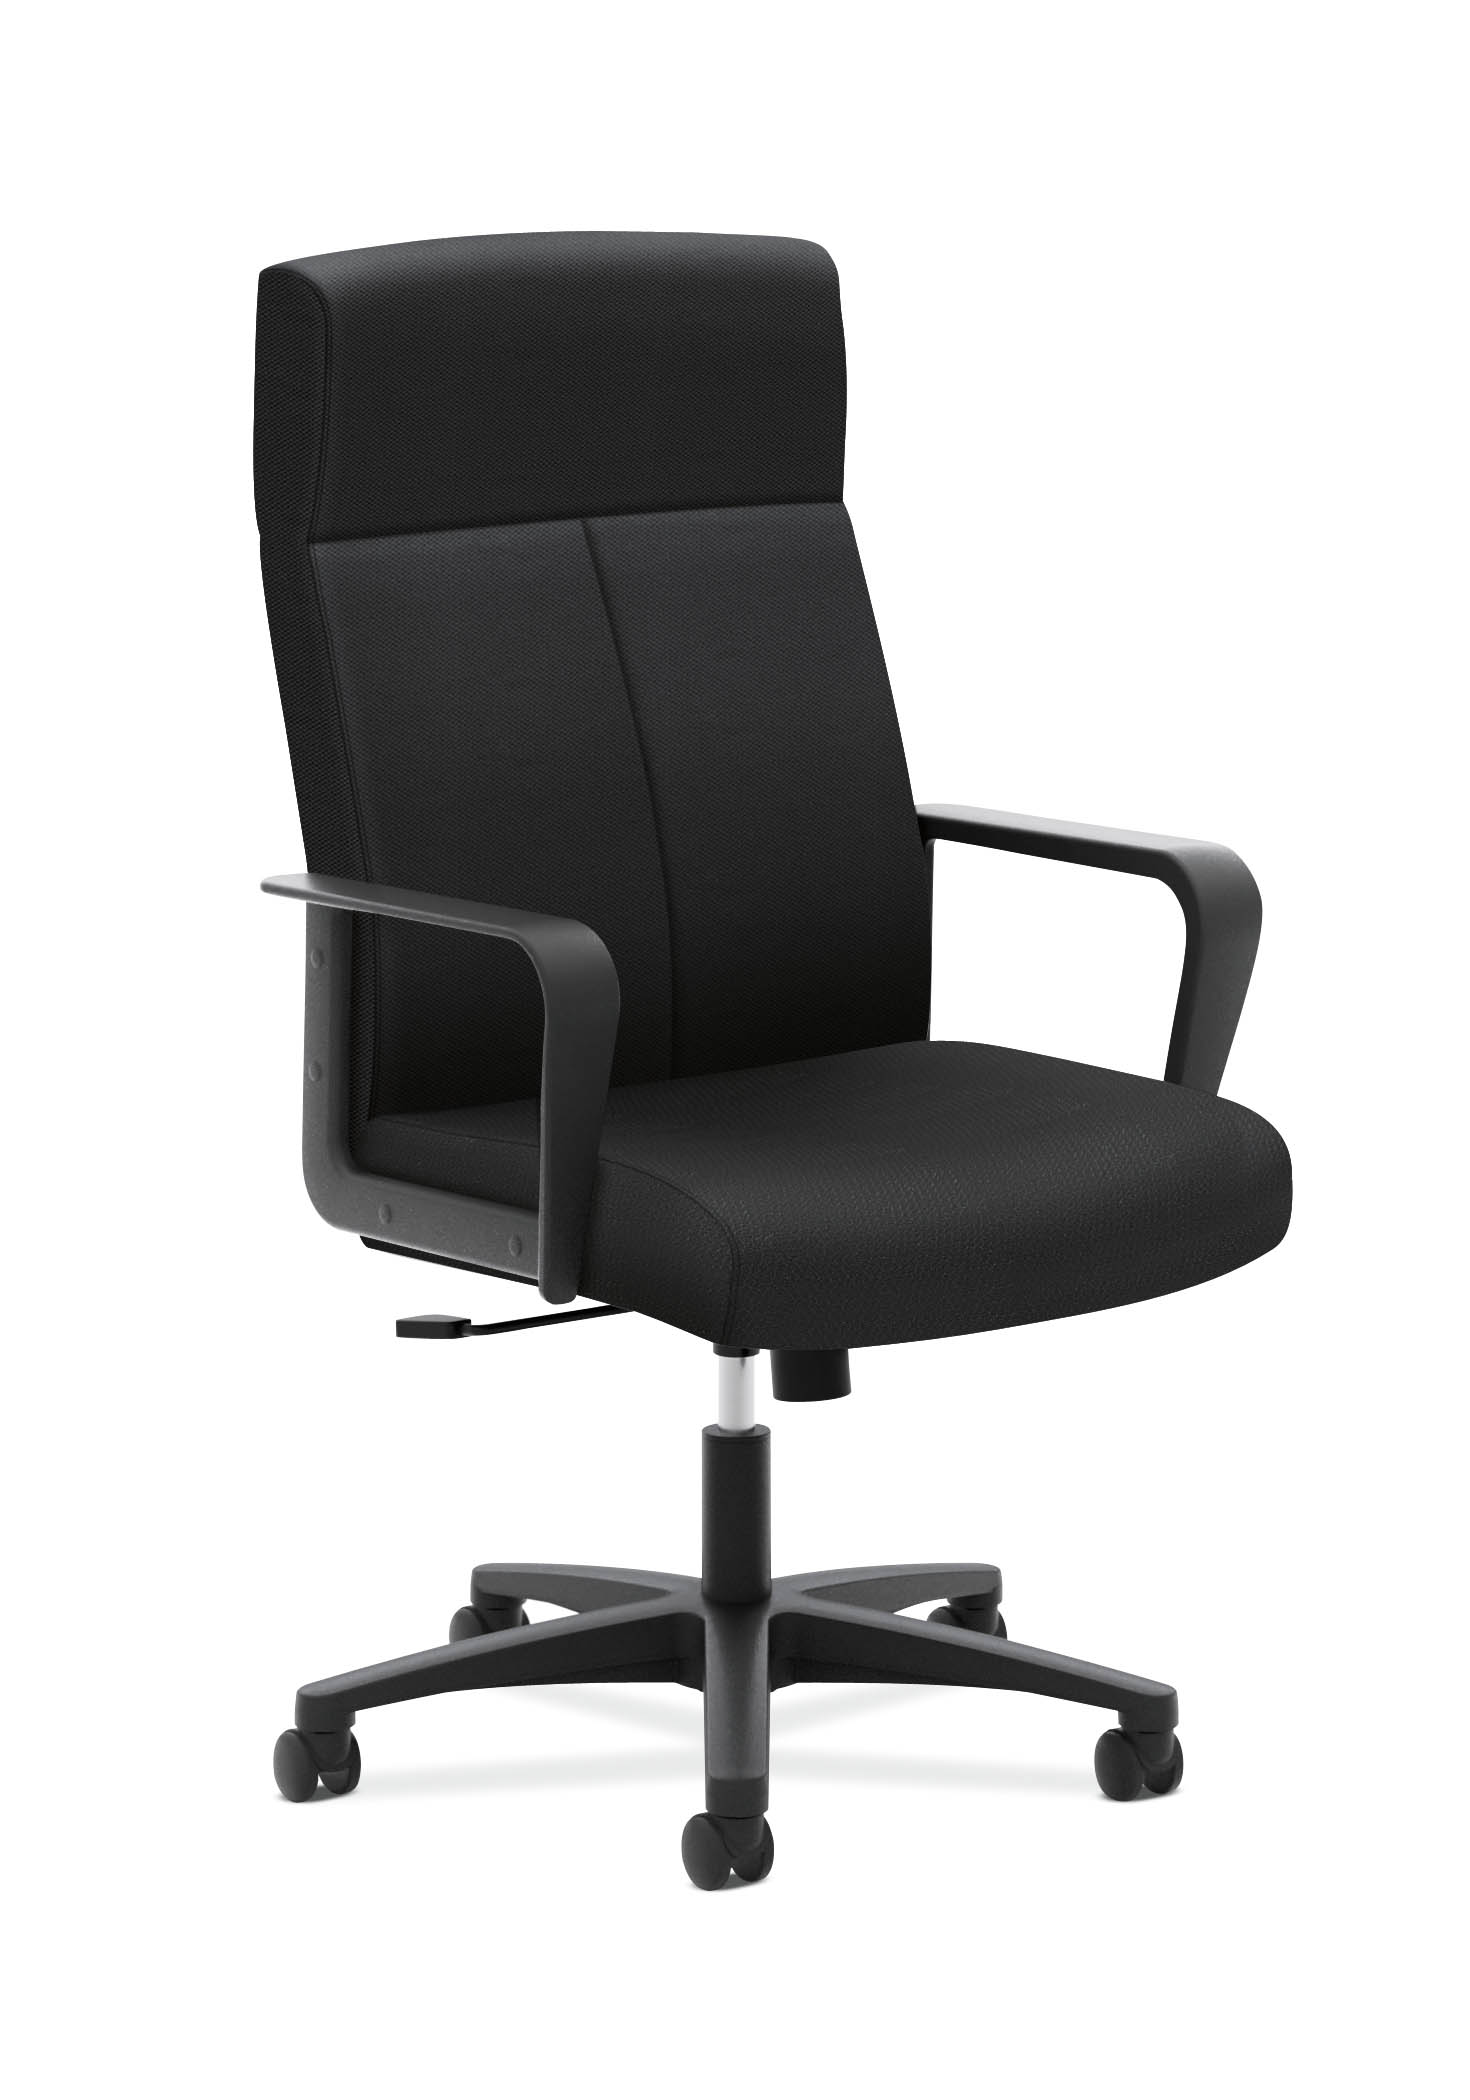 HON VL604 High-Back Chair